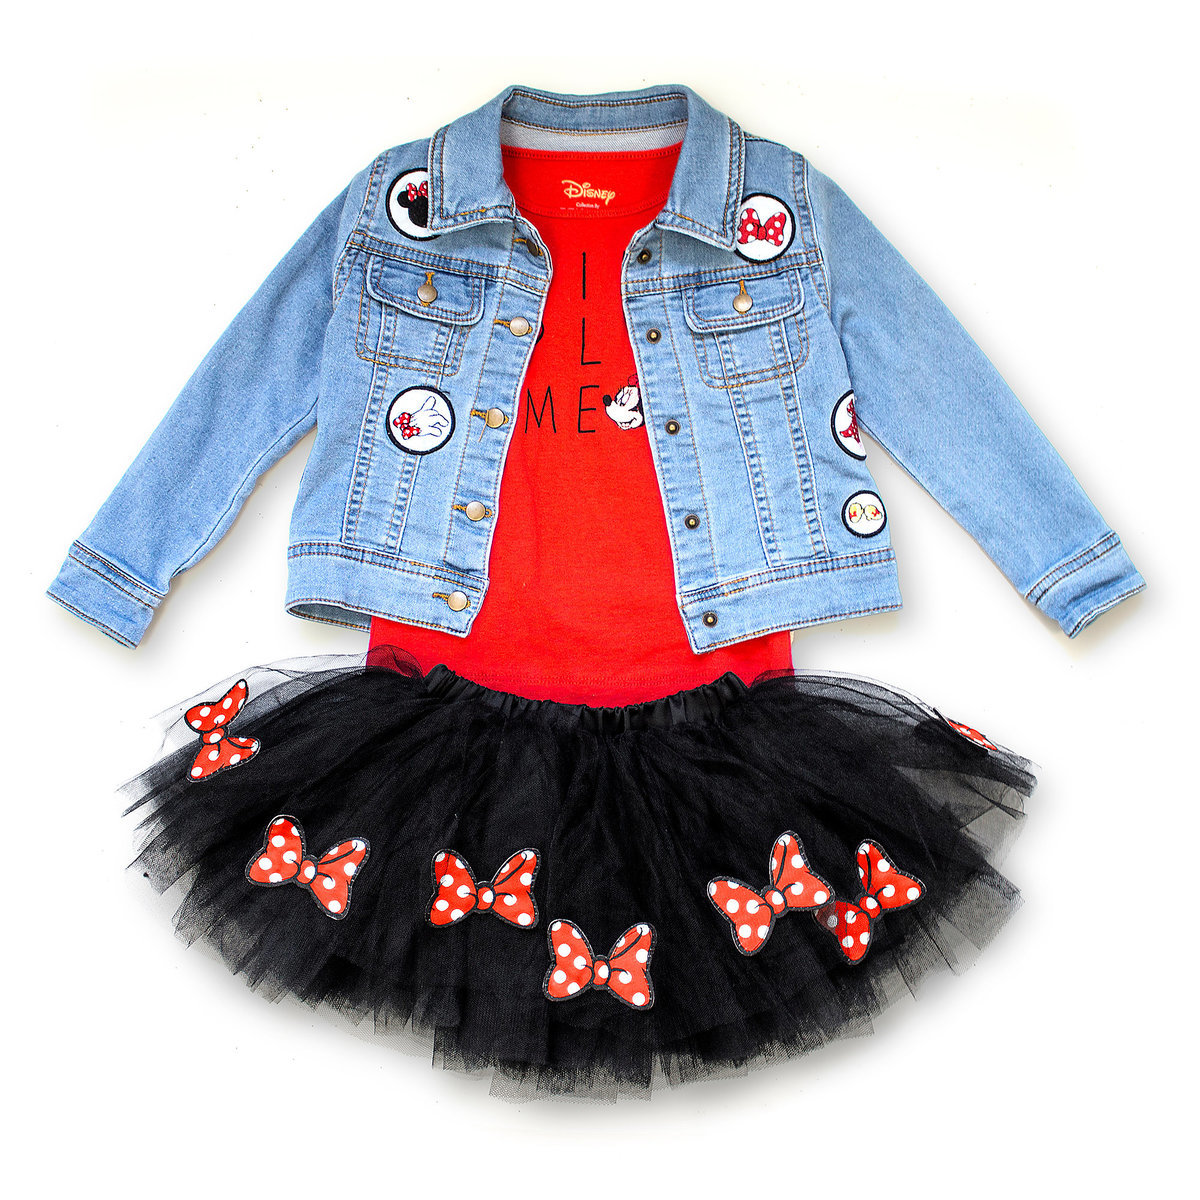 87ad7797b Product Image of Minnie Mouse Skirt Set - Tutu Couture - Girls # 1